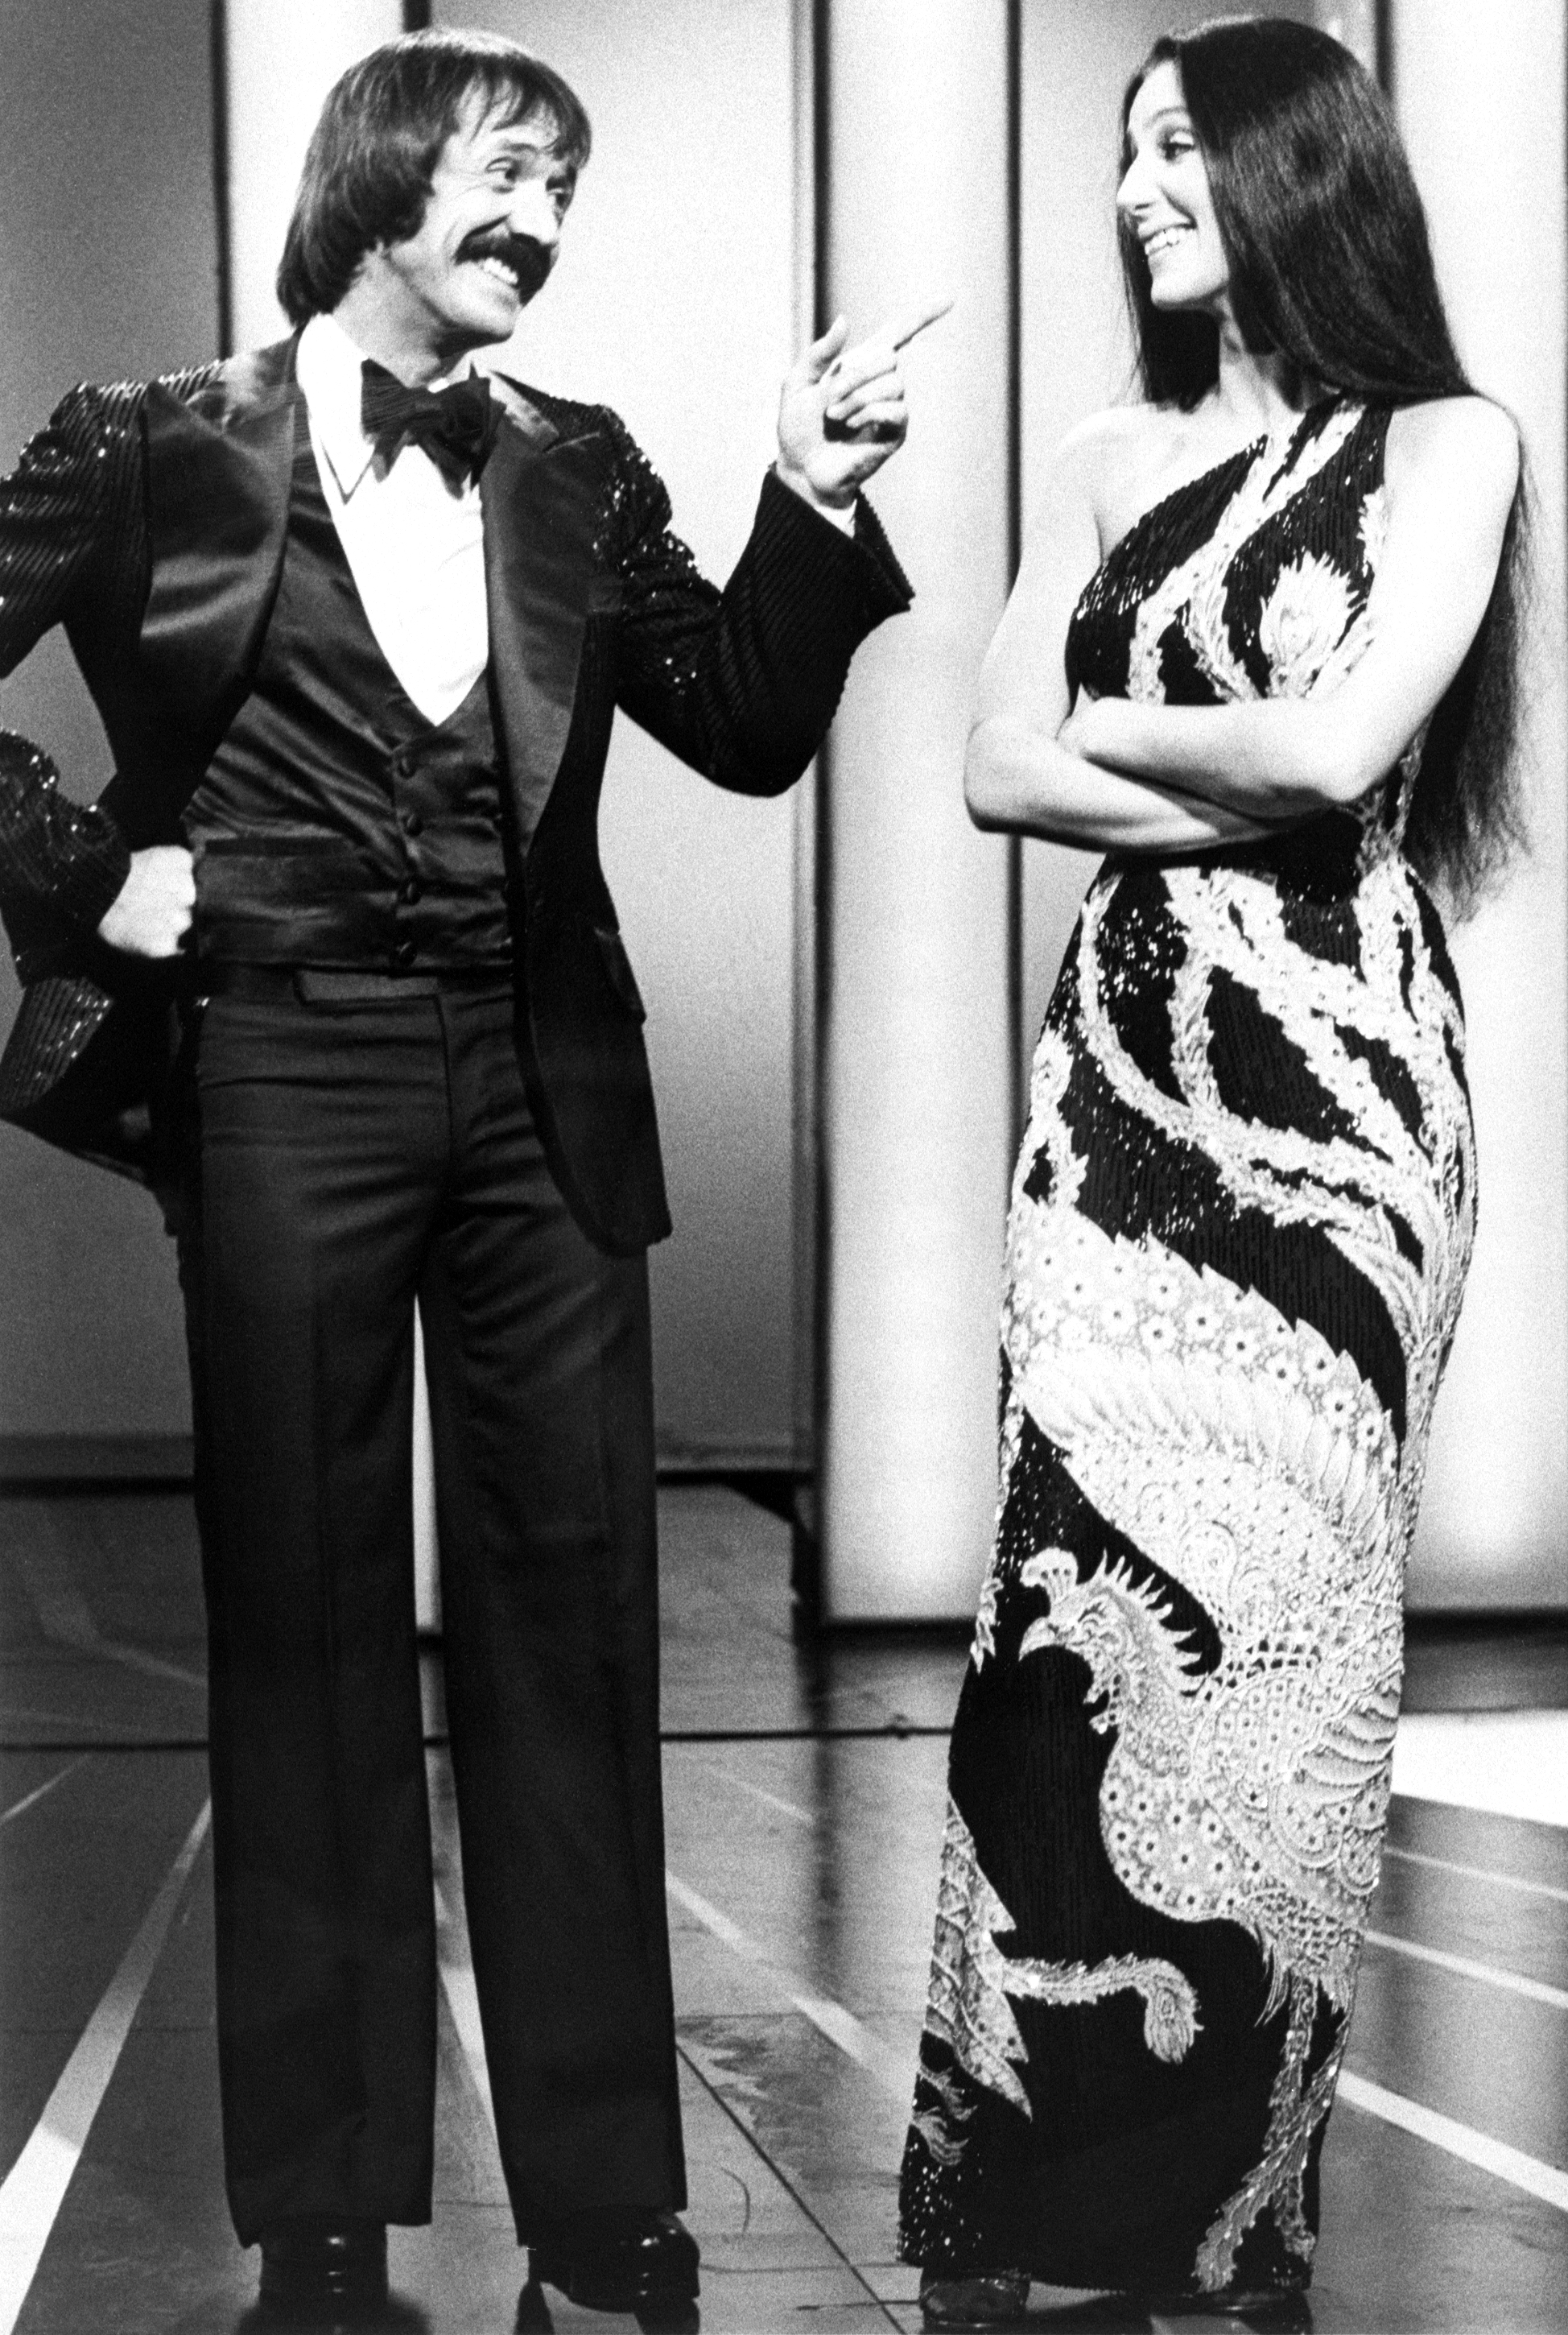 Cher Through The Years - The Sonny & Cher Comedy Hour premiered on CBS and ran for four seasons, concluding in May 1974. The variety show featured the pair singing and doing comedy sketches, often with Chaz in tow.